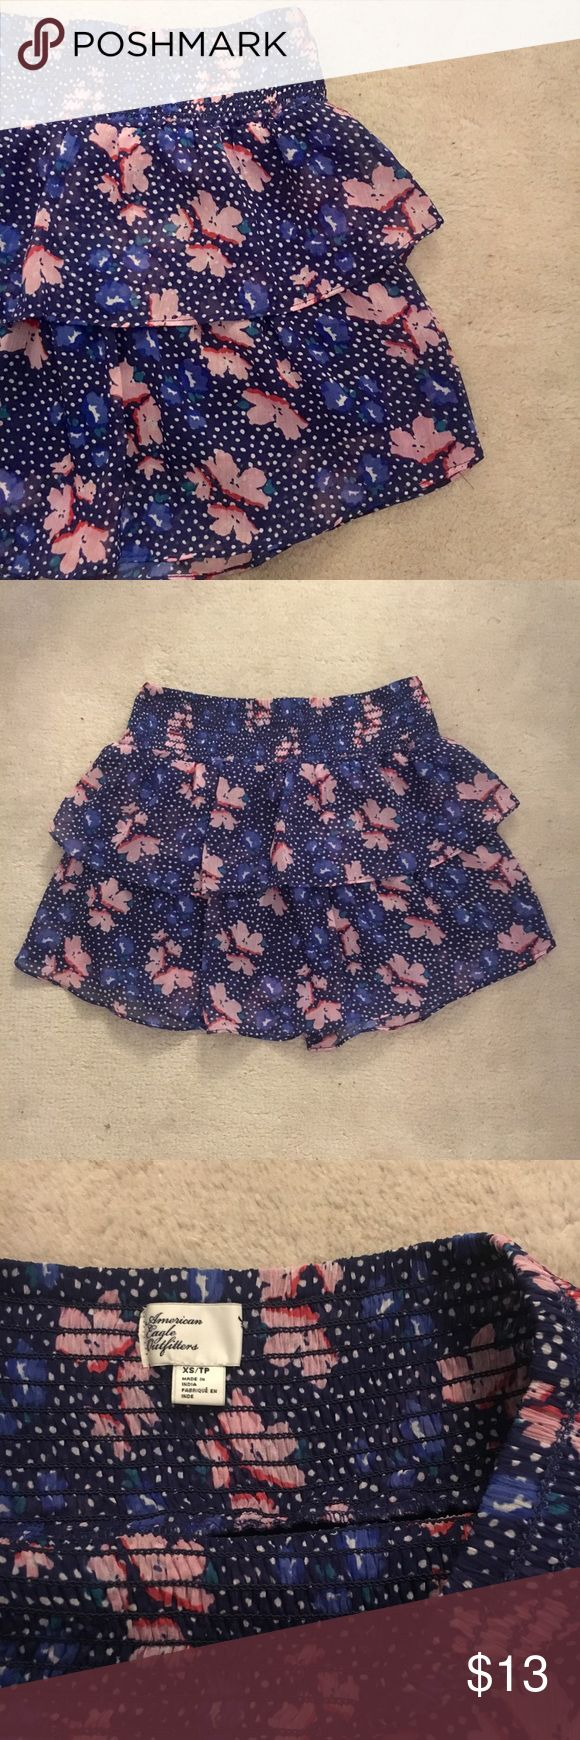 """American Eagle Floral Skirt Excellent condition American Eagle Outfitters navy and pink floral skirt! Worn maybe three times. Sheer layers on top with a solid navy layer underneath. Length is approximately 14"""", and waist is approximately 13"""".                     Suggested user + top rated seller + fast shipper! American Eagle Outfitters Skirts"""